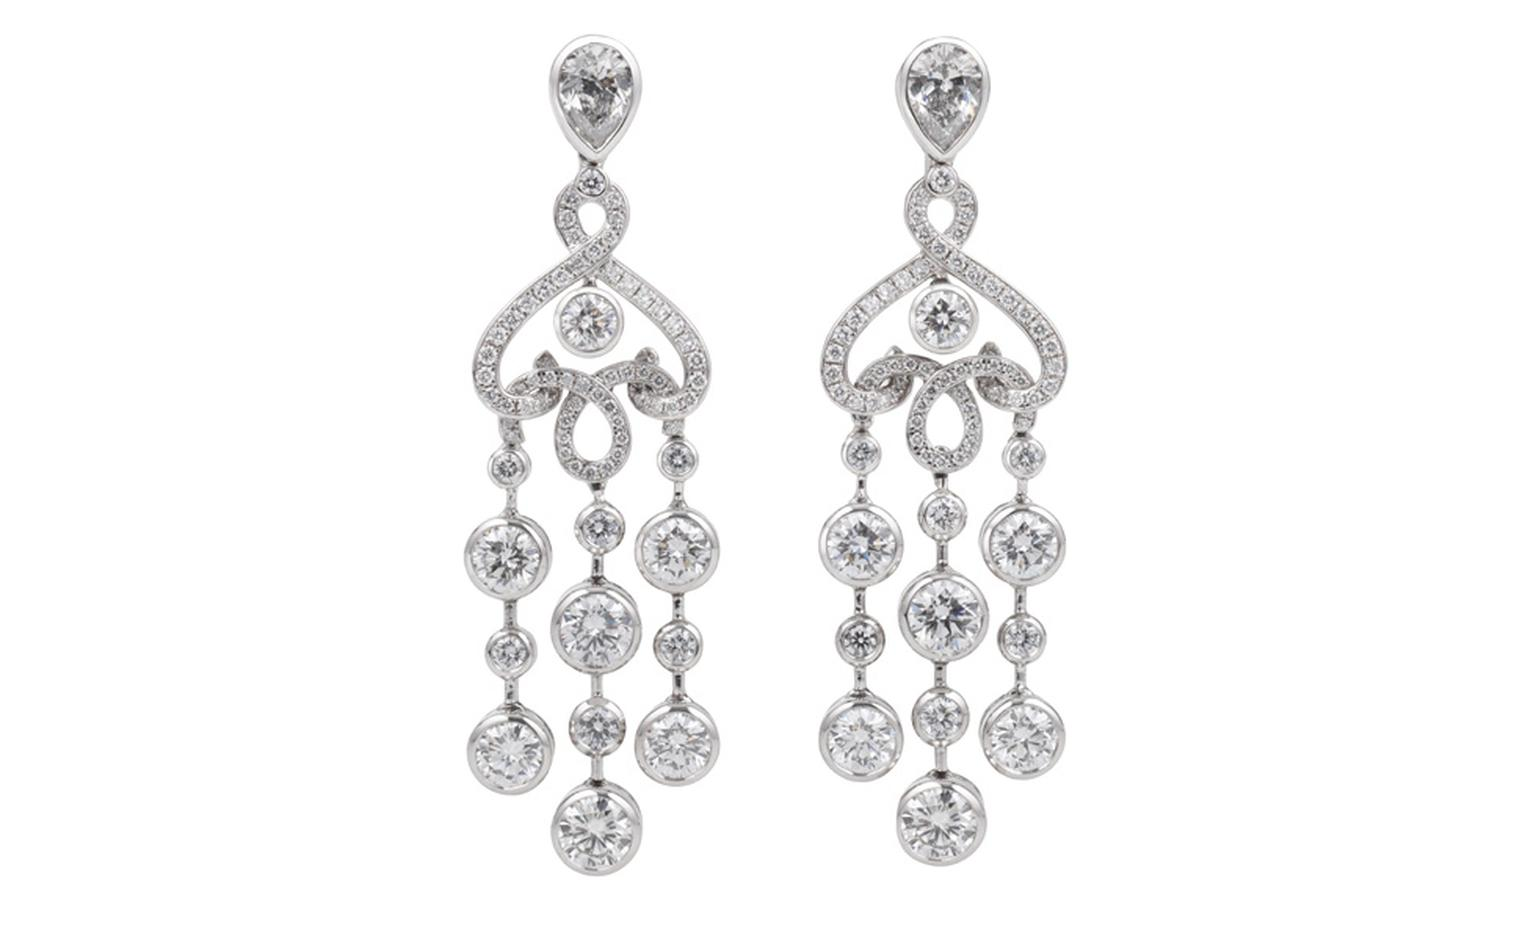 Fabergé Carnet de Bal White Damask earrings inspired by the damask table cloths used to drape banquet tables in Russia in the early 20th century. POA